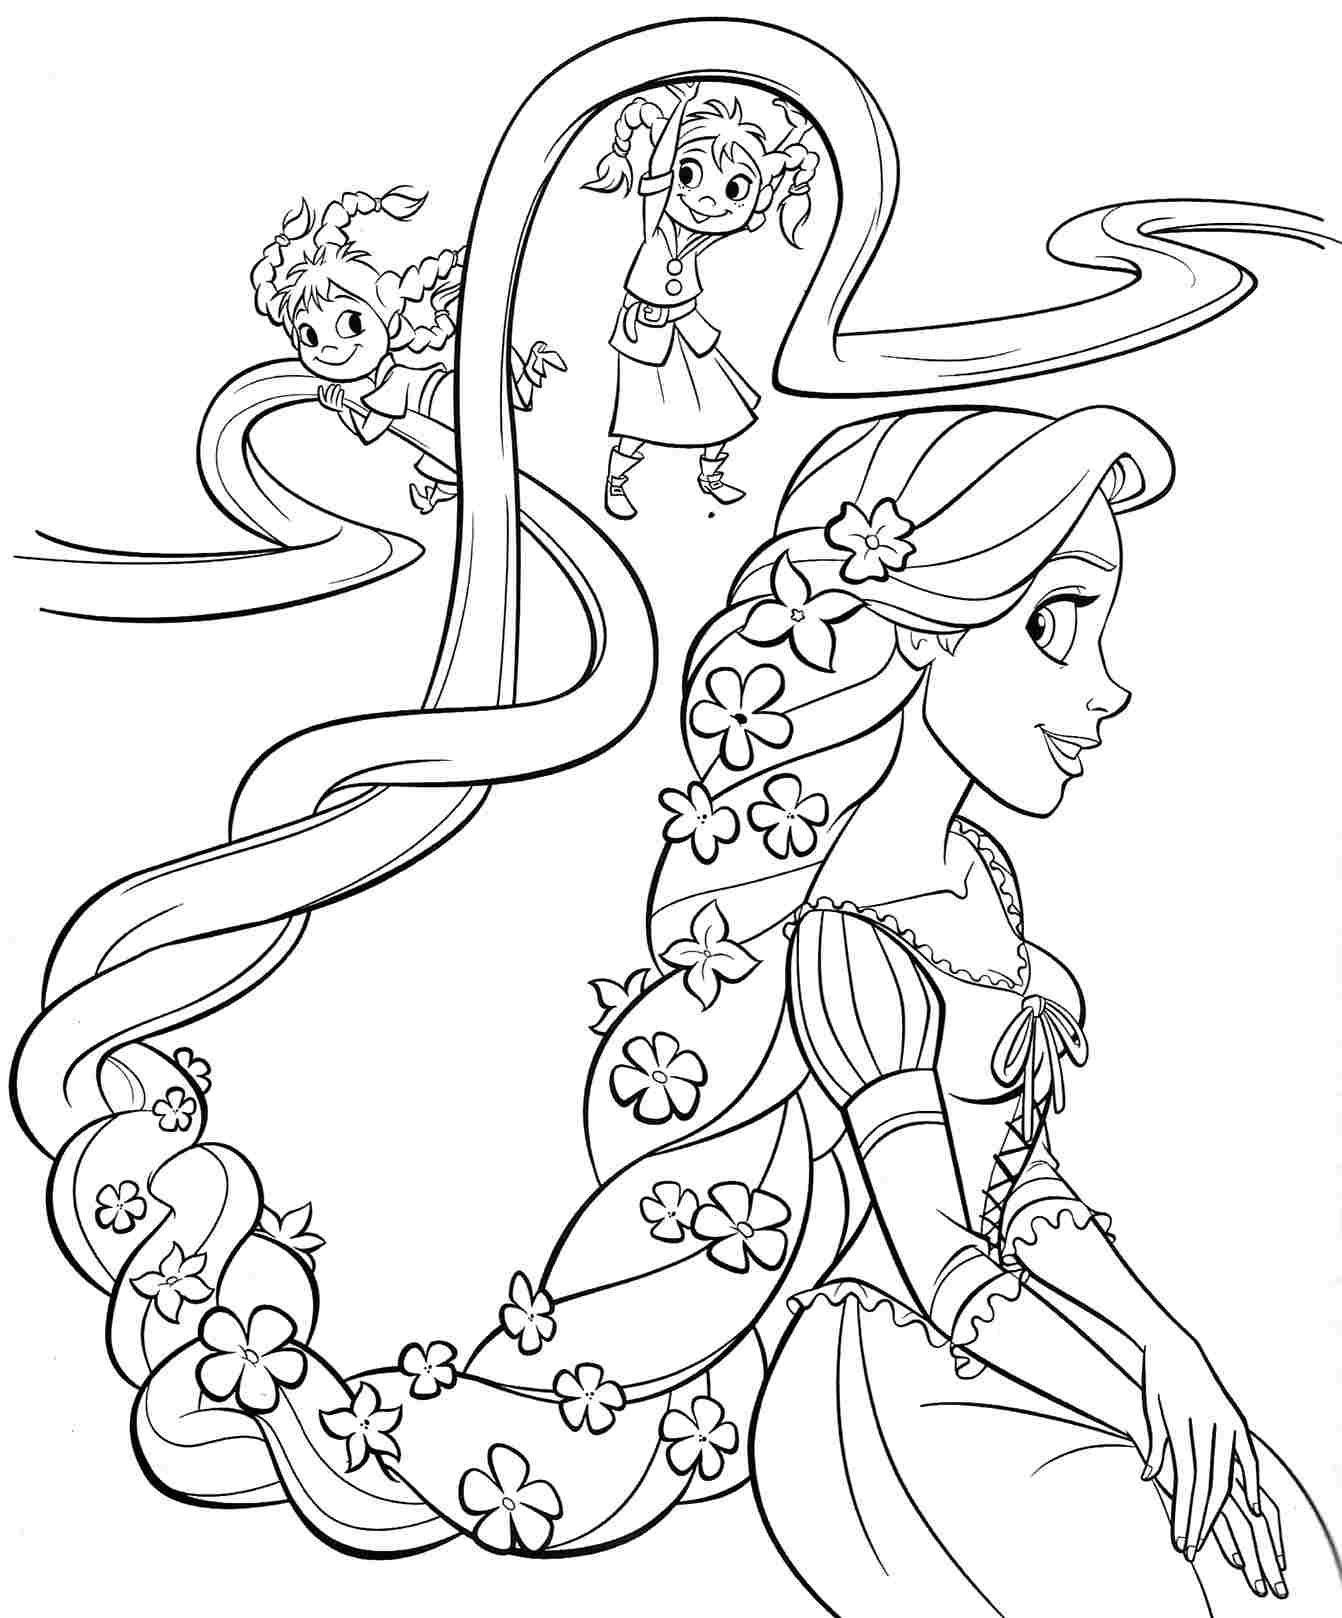 1342x1618 Innovative Easy Disney Princess Coloring Pages Cinderella For You